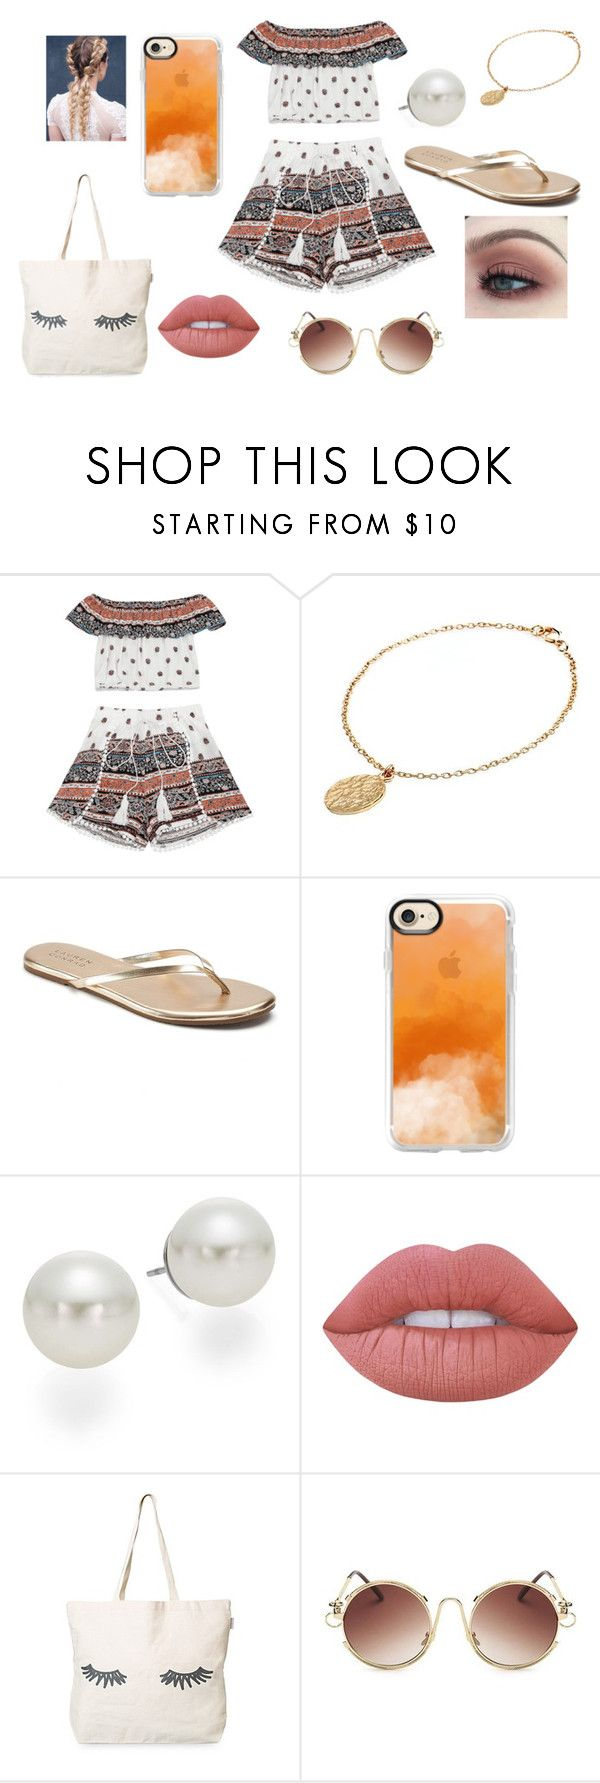 """""""Tuesday #2"""" by andrearbles on Polyvore featuring CINDERELA B, LC Lauren Conrad, Casetify, AK Anne Klein and Lime Crime"""